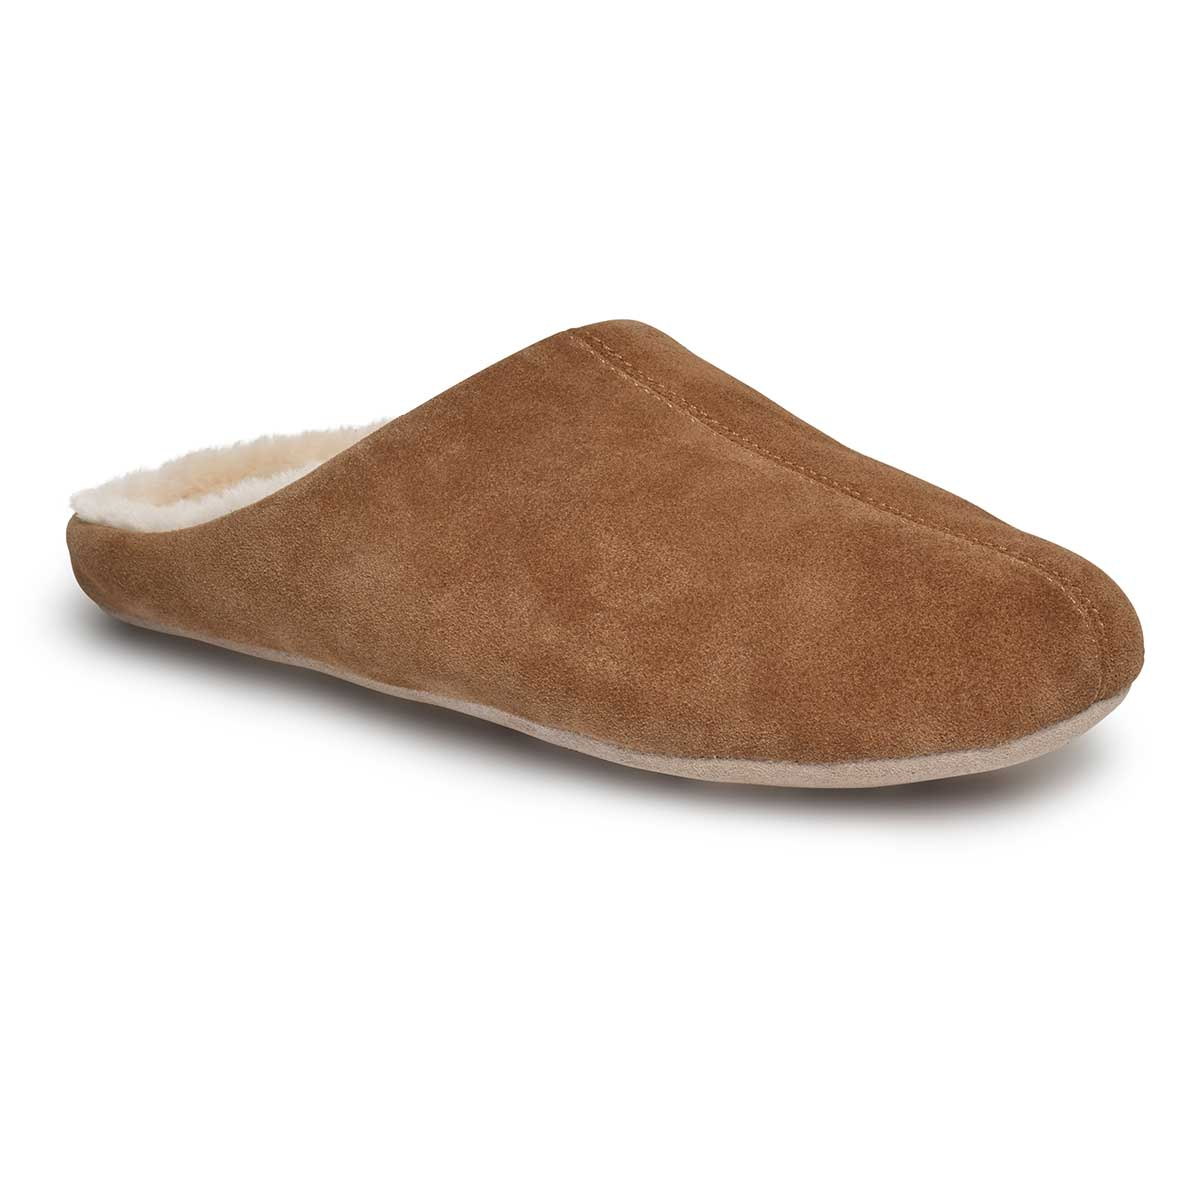 7f6d92b83d8 Mens Sheepskin Slippers